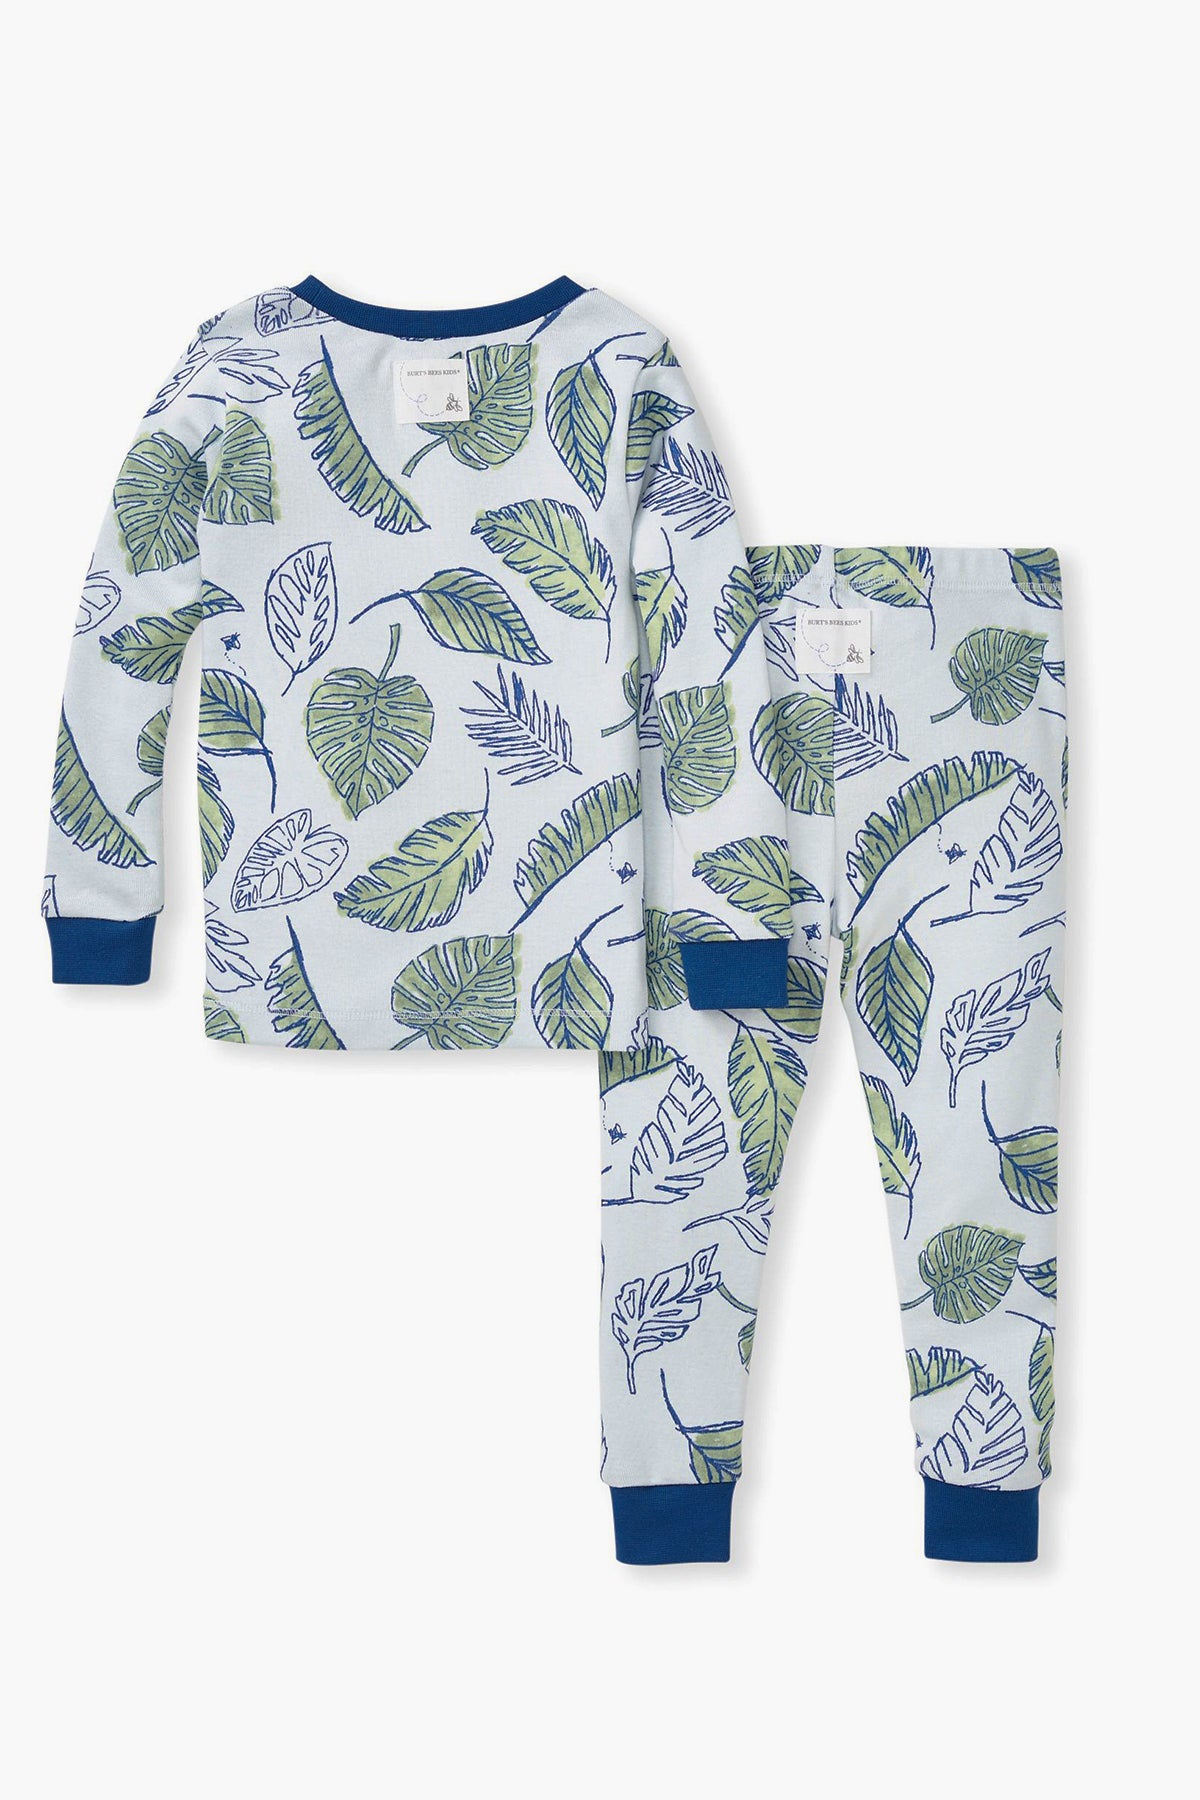 Burt's Bees Jungle Canopy Boys Pajama Set